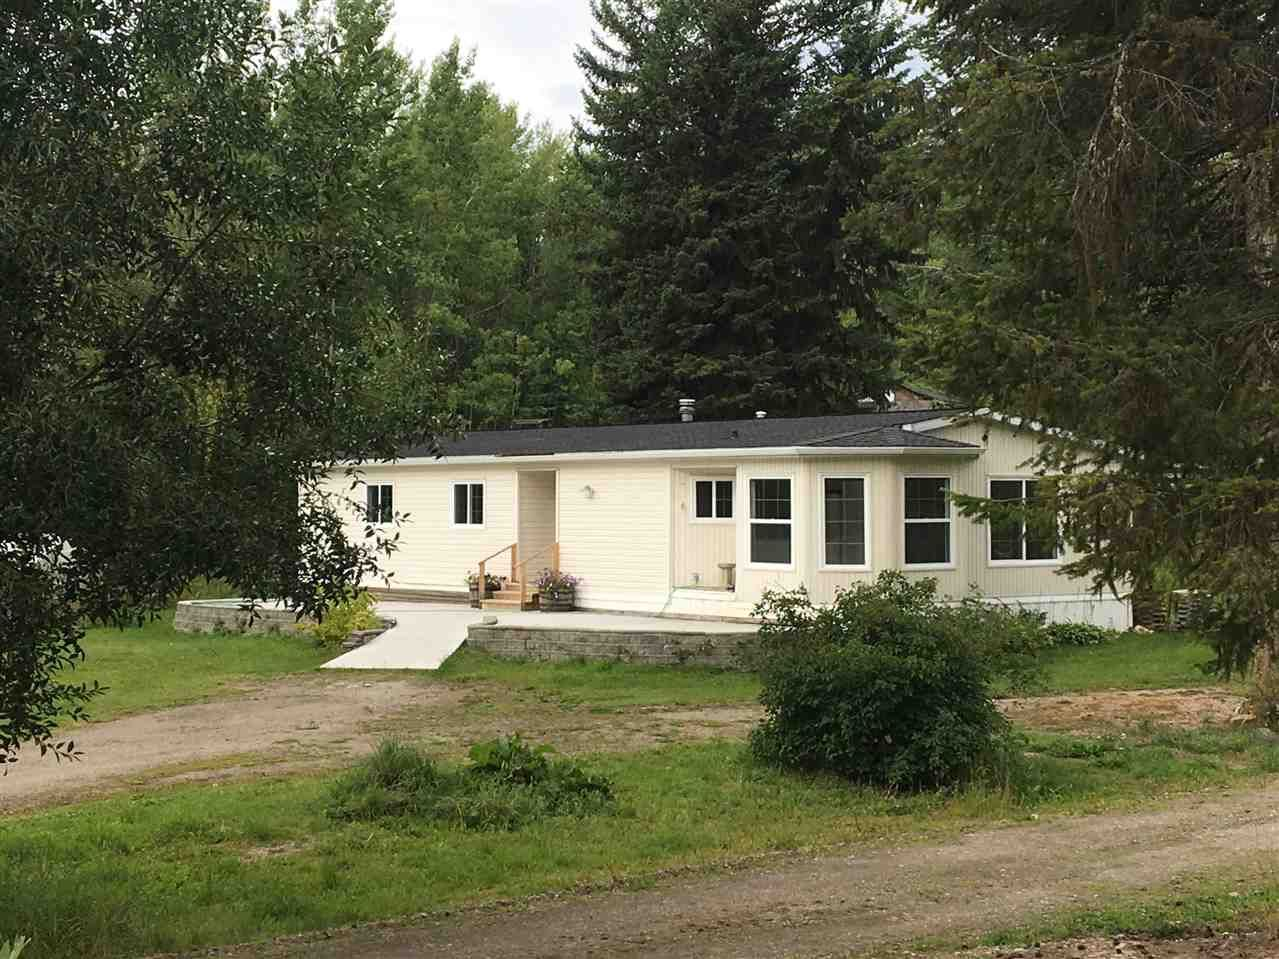 Photo 3: Photos: 2404 N VERNON Road in Quesnel: Bouchie Lake Manufactured Home for sale (Quesnel (Zone 28))  : MLS®# R2492081